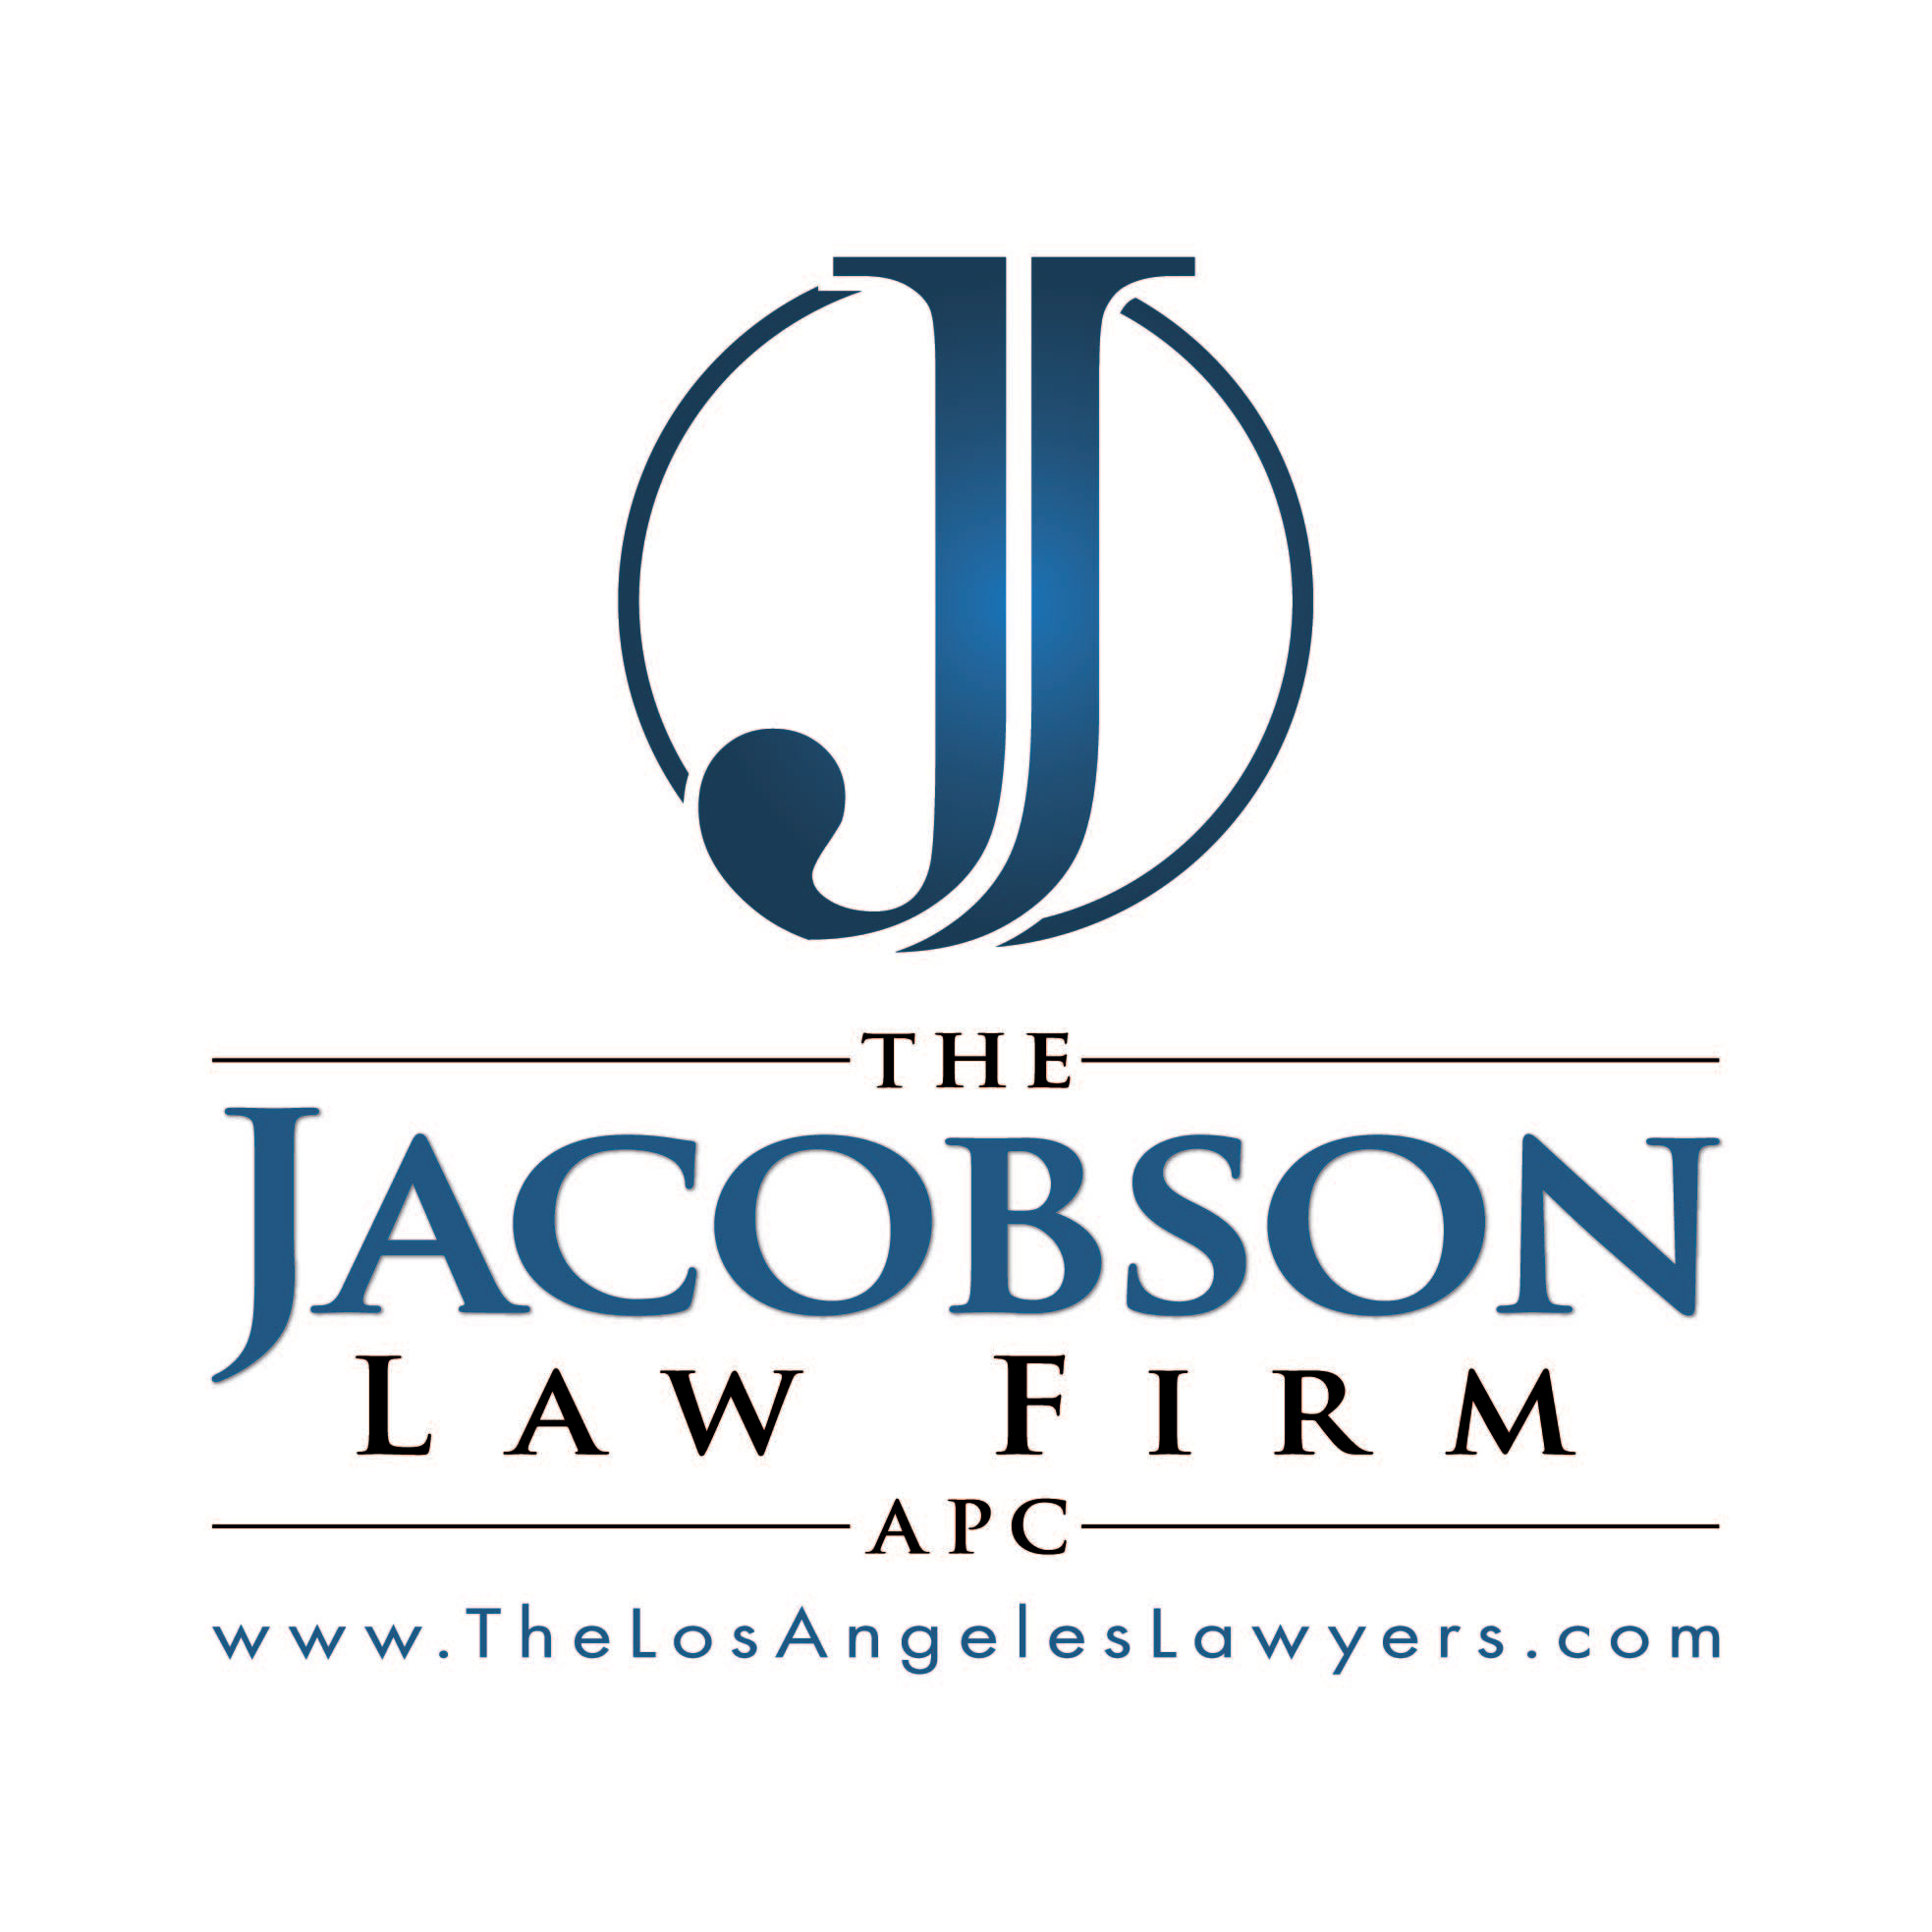 The Jacobson Law Firm, APC - Immigration & Workers' Compensation - ad image